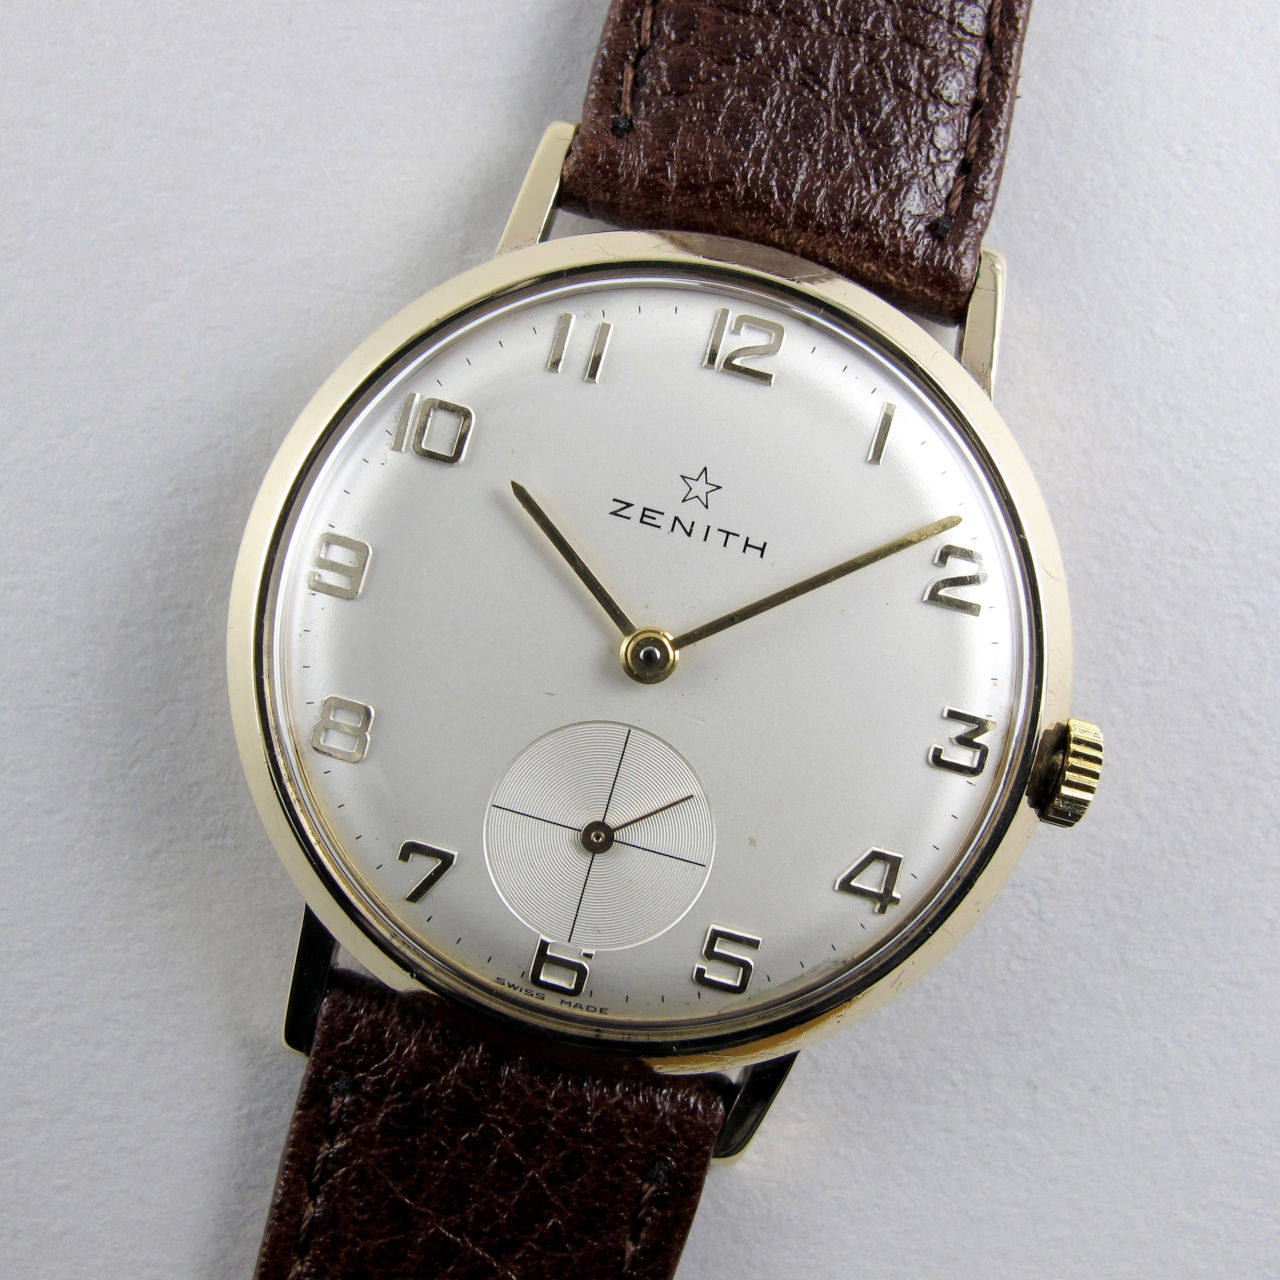 Zenith gold vintage wristwatch, hallmarked 1965